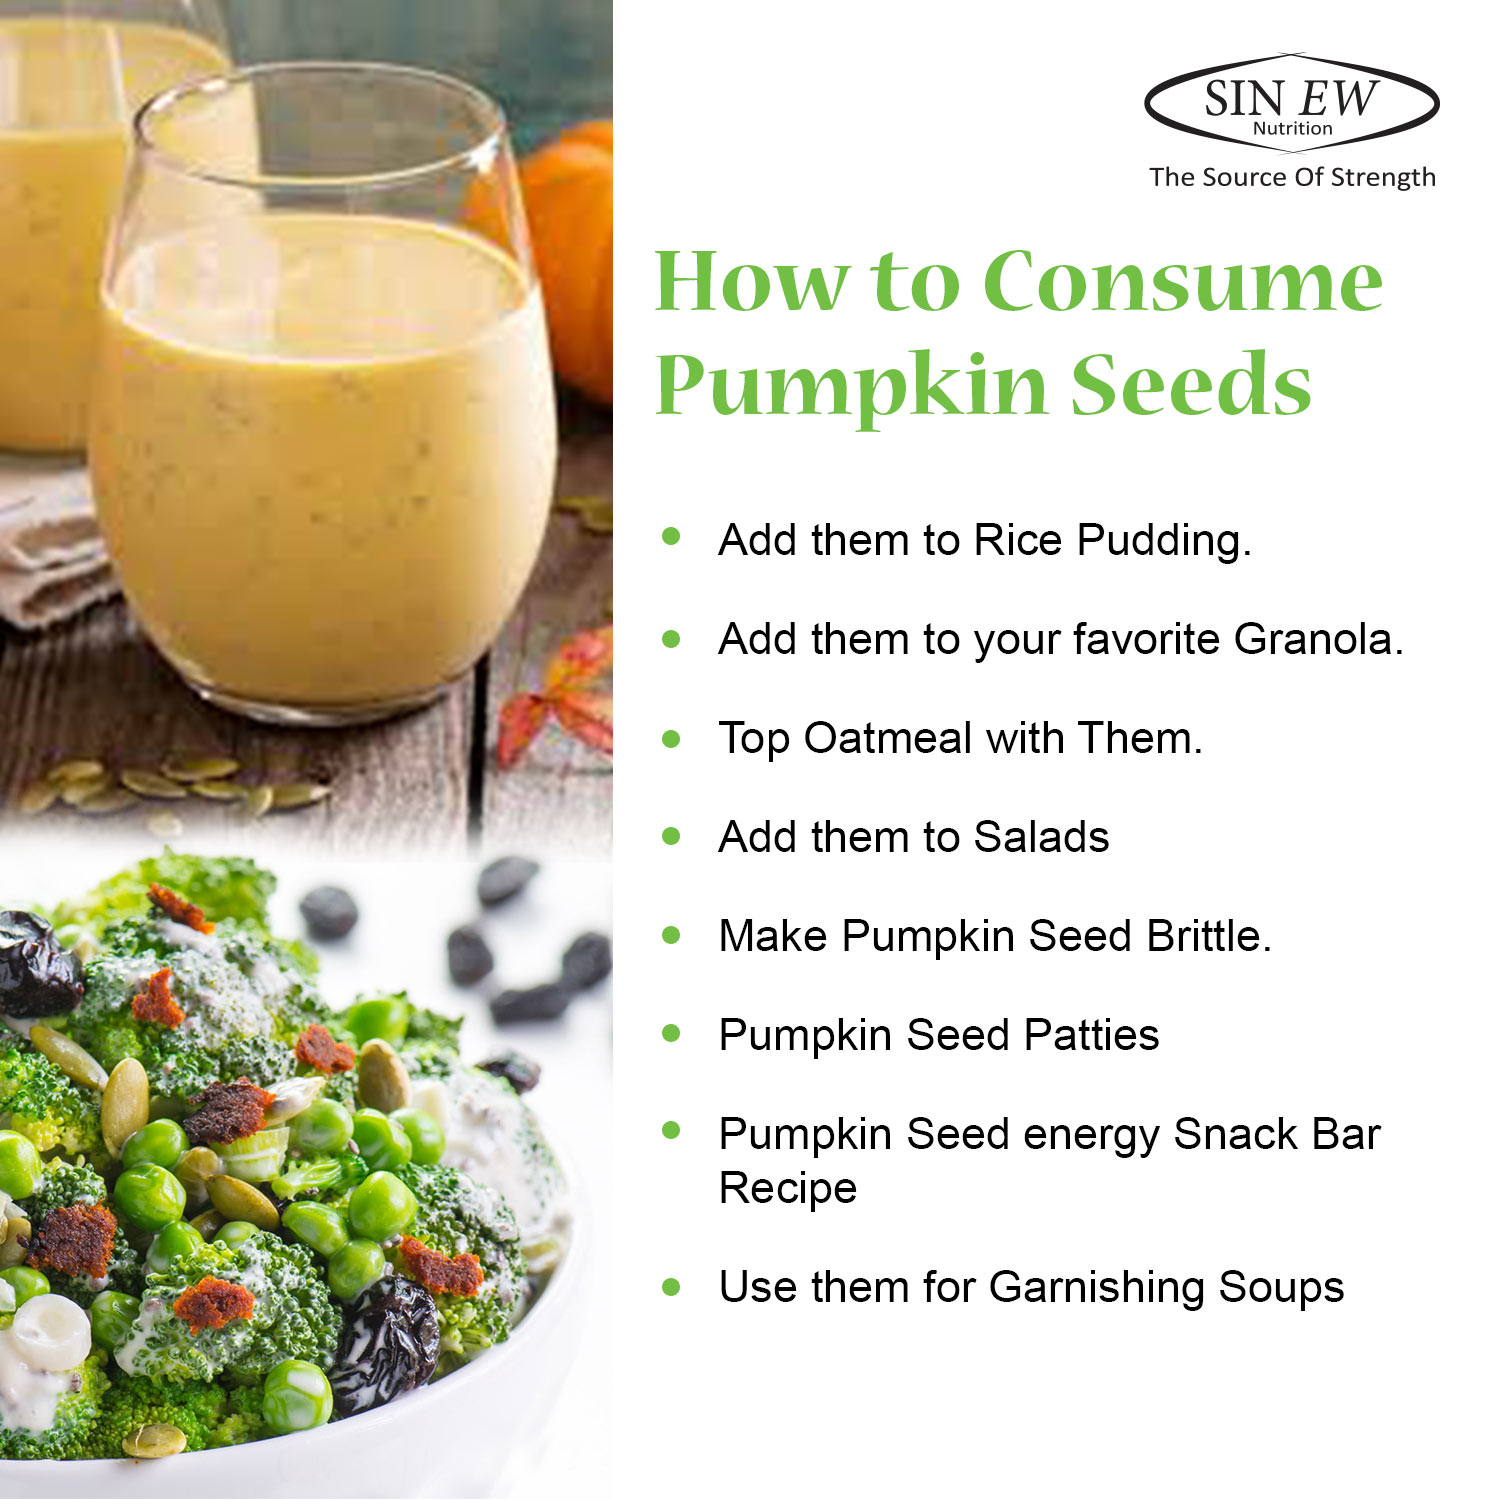 How To Consume Pumpkin Seeds